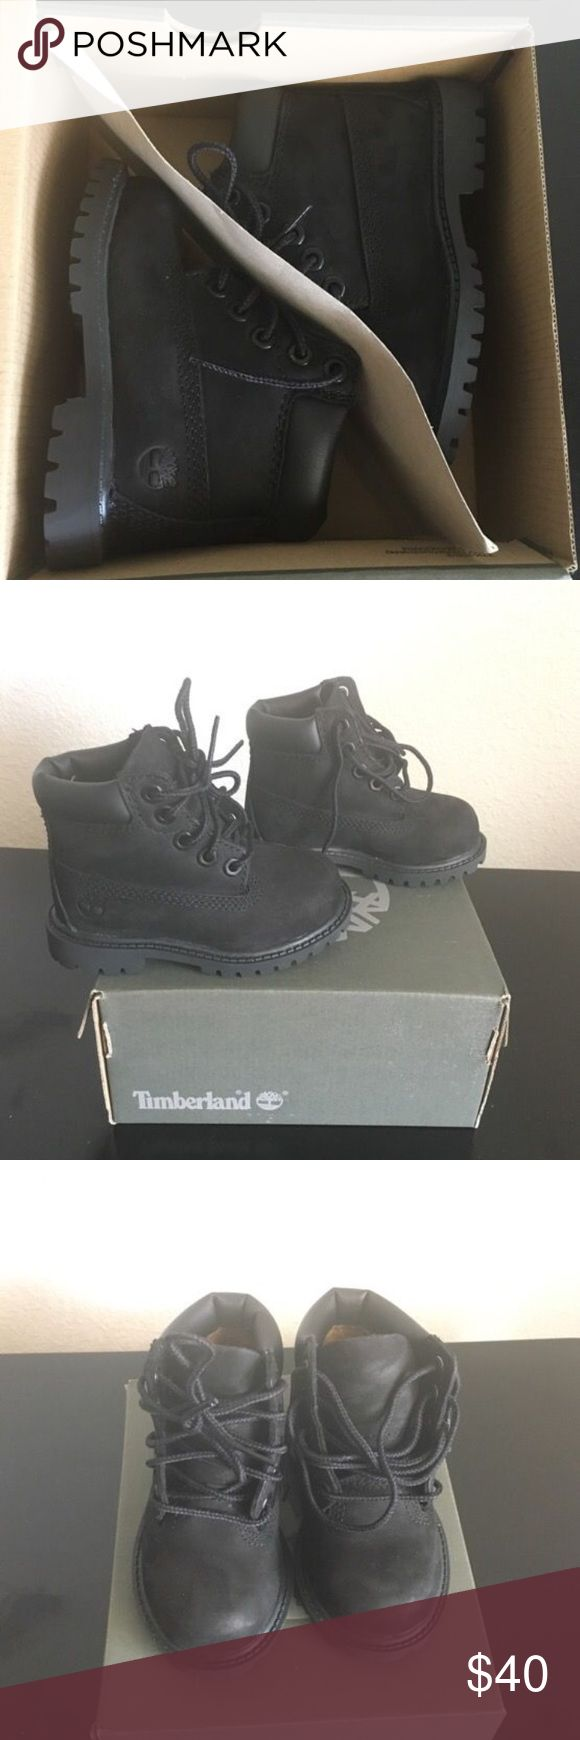 Toddler Timberland Boots Original box included. 5c. Mint condition. Worn twice. Timberland Shoes Boots